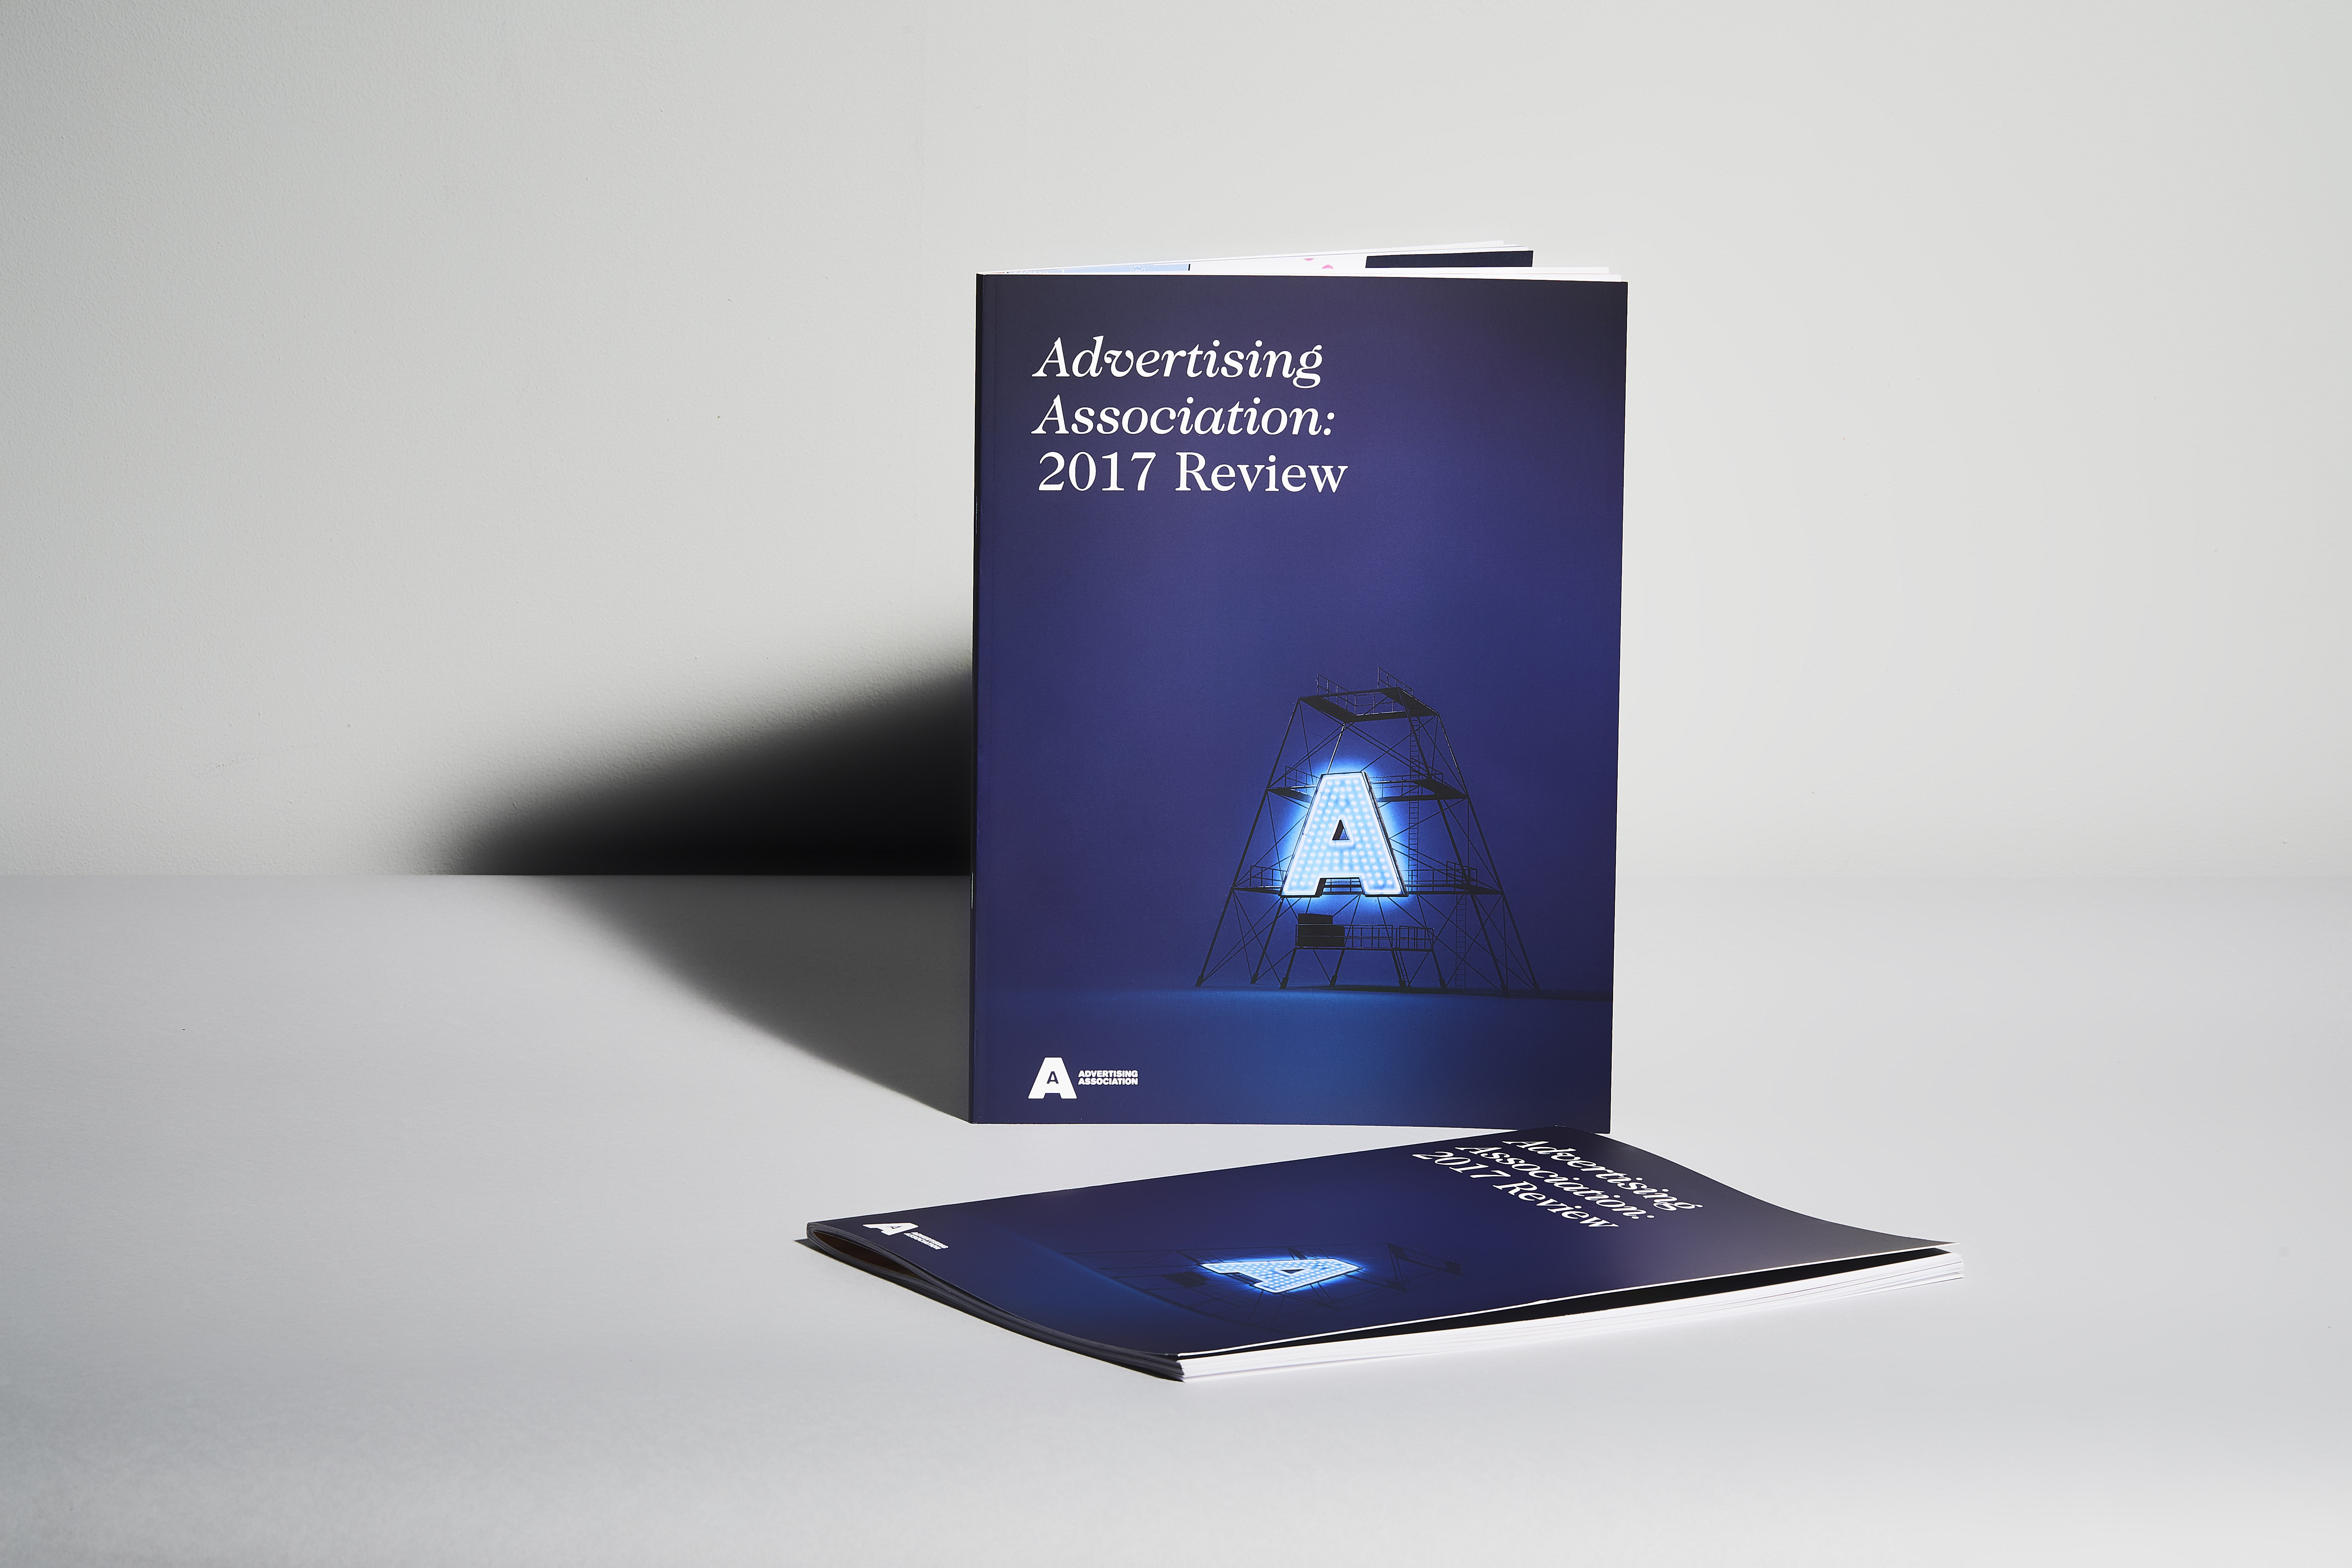 Advertising Association 2017 annual review